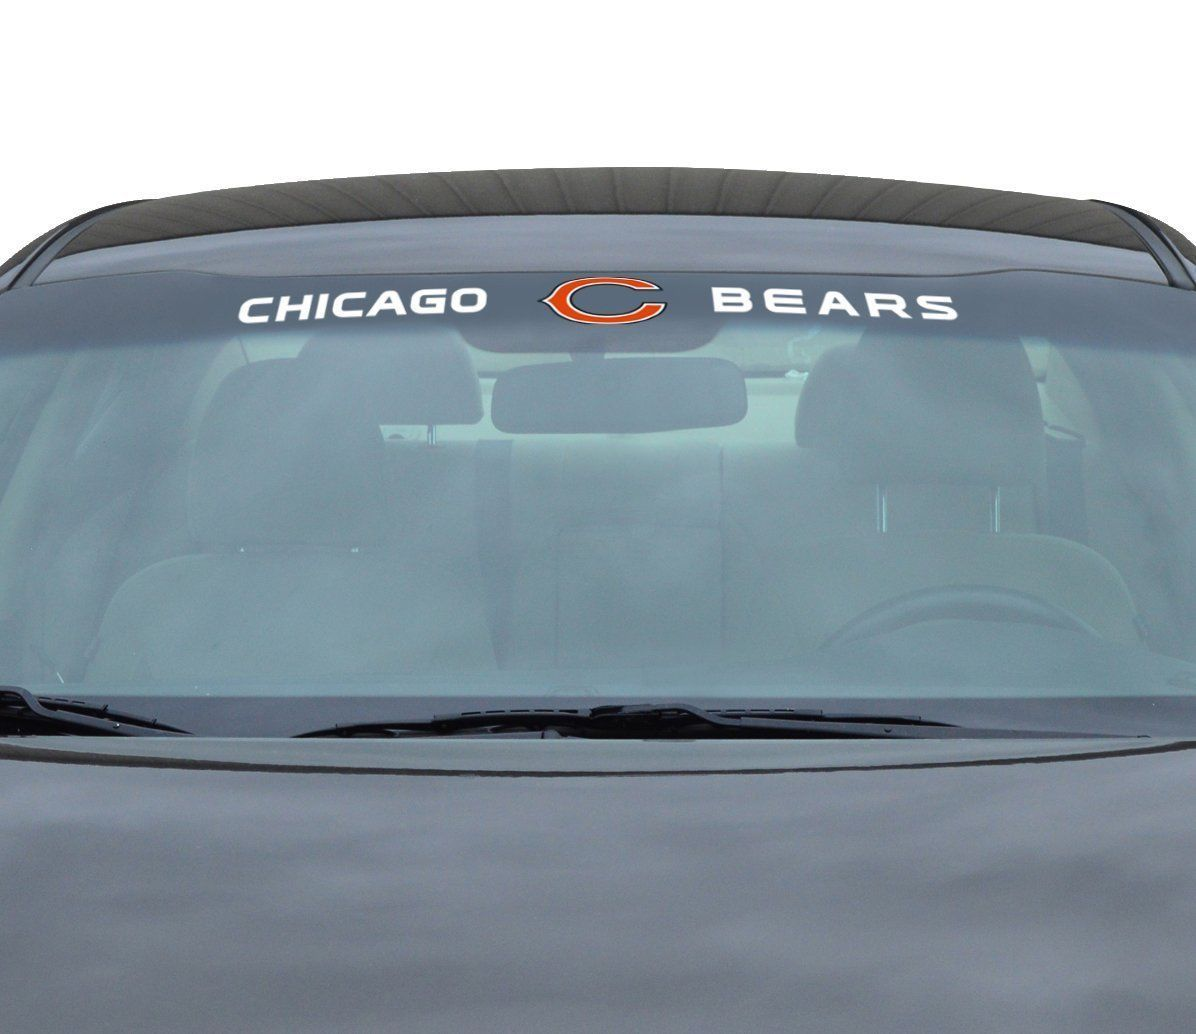 "CHICAGO BEARS 35"" X 4"" WINDSHIELD REAR WINDOW DECAL CAR TRUCK NFL FOOTBALL"